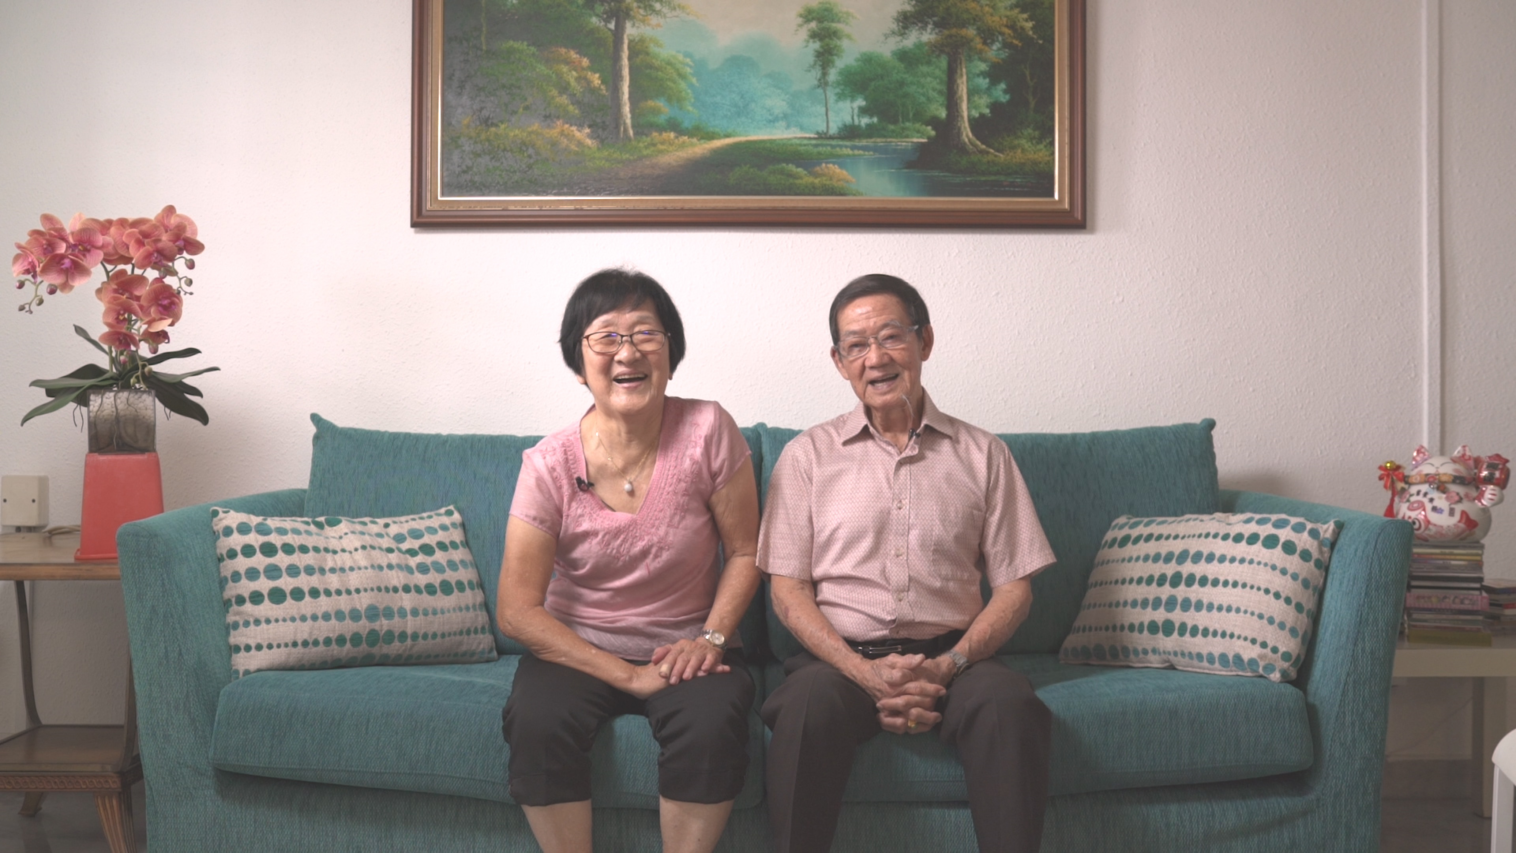 One Couple's Secret To 57 Years of Marriage: Eat The Same Breakfast, And Take Things As They Come